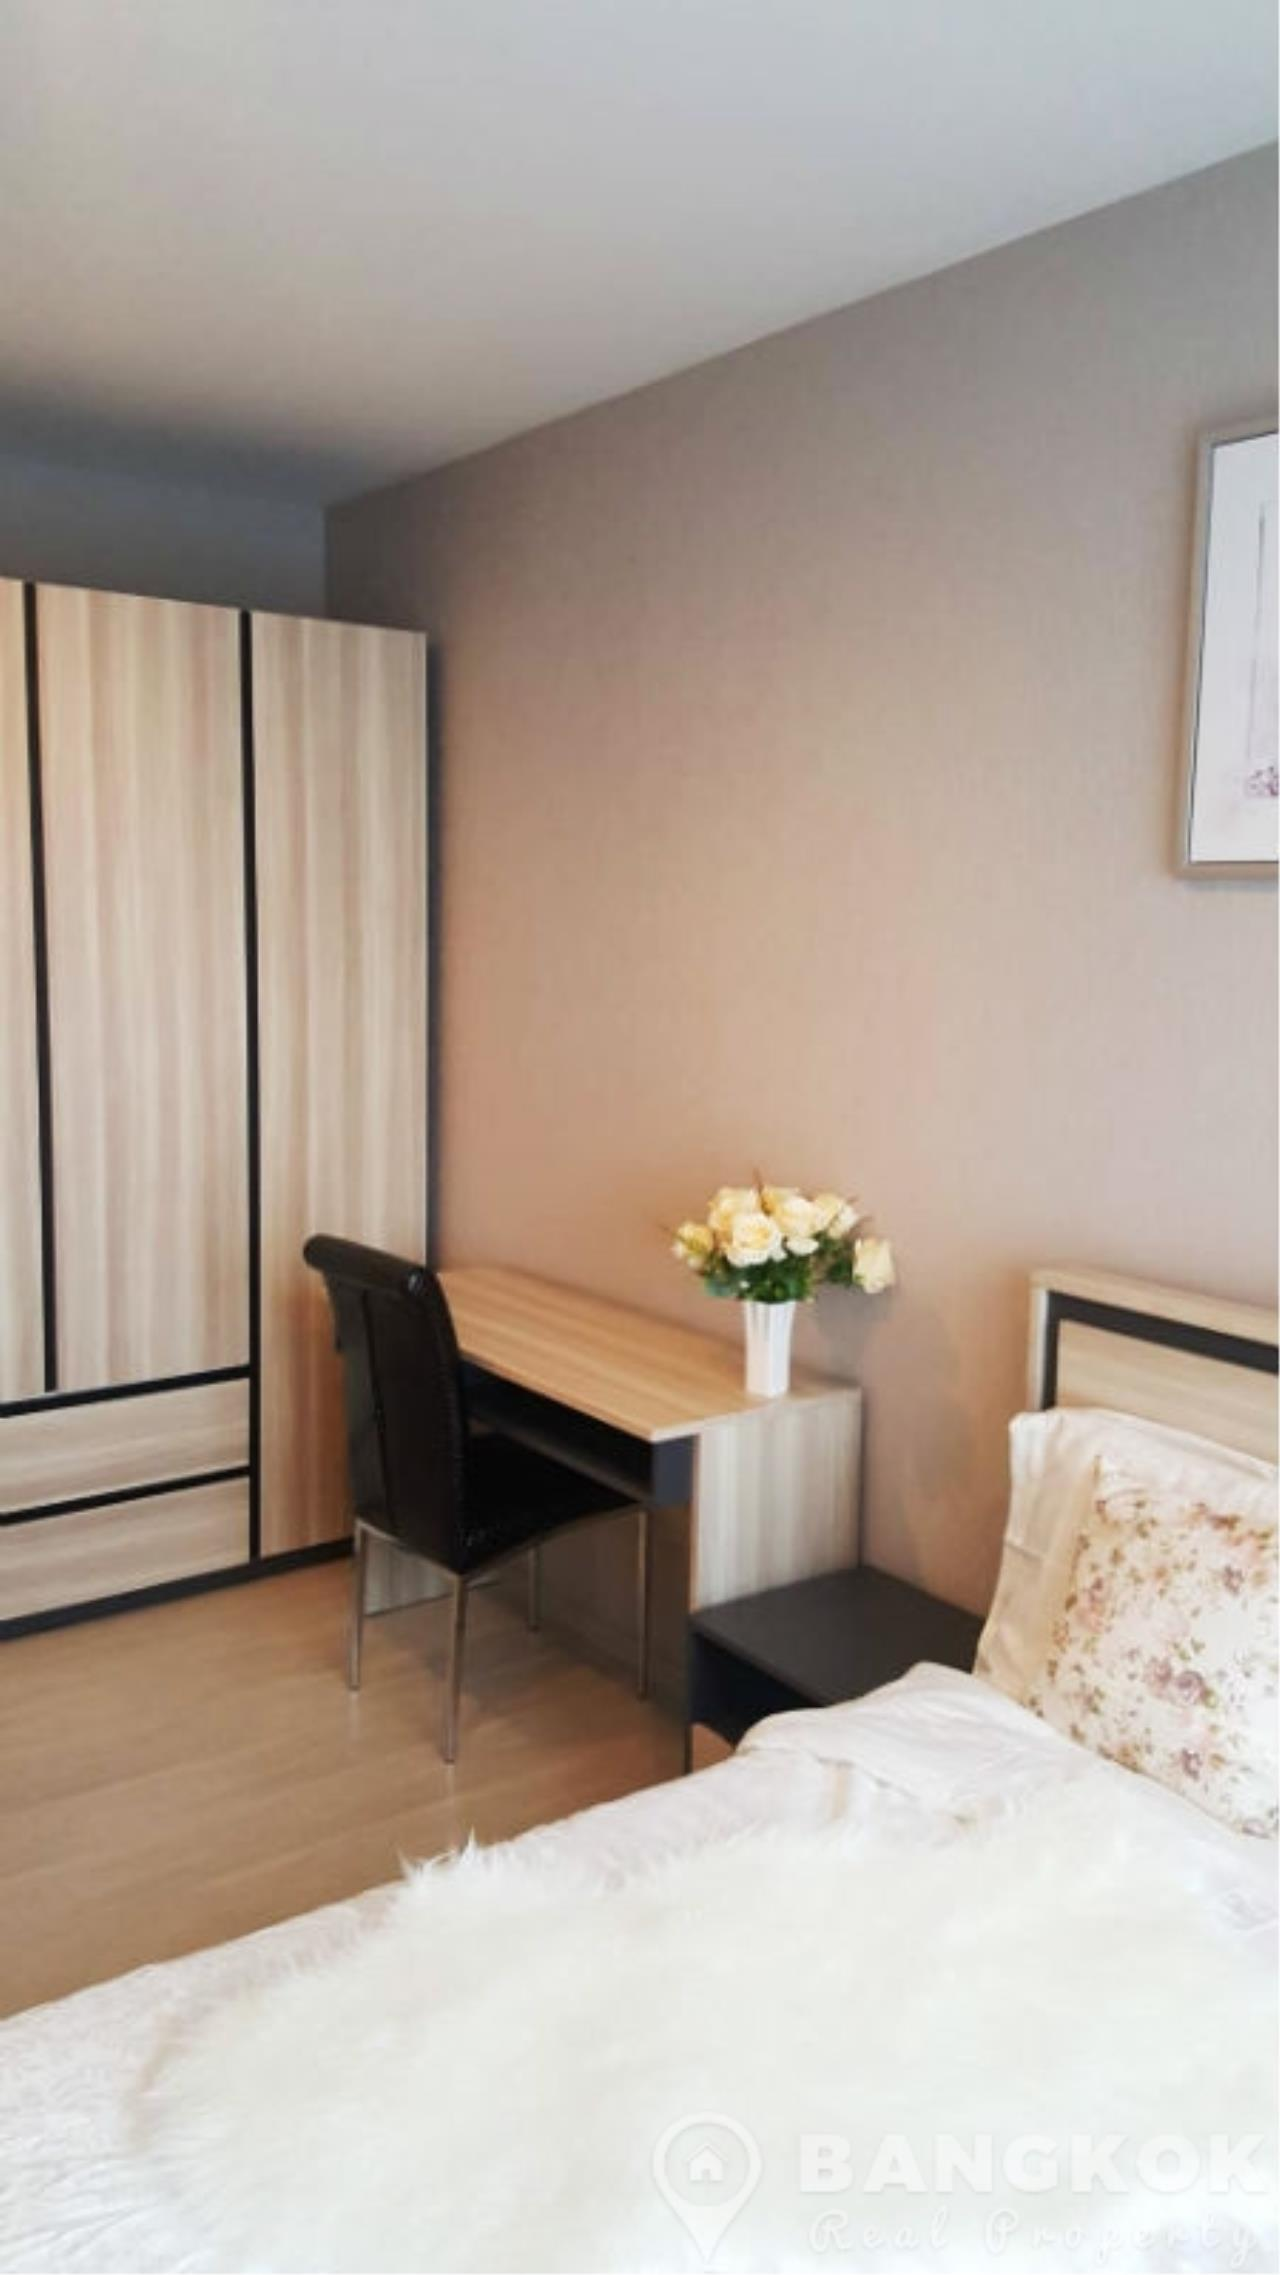 Bangkok Real Property Agency's Life Sukhumvit 48 | Brand New Spacious 1 Bed near BTS 9